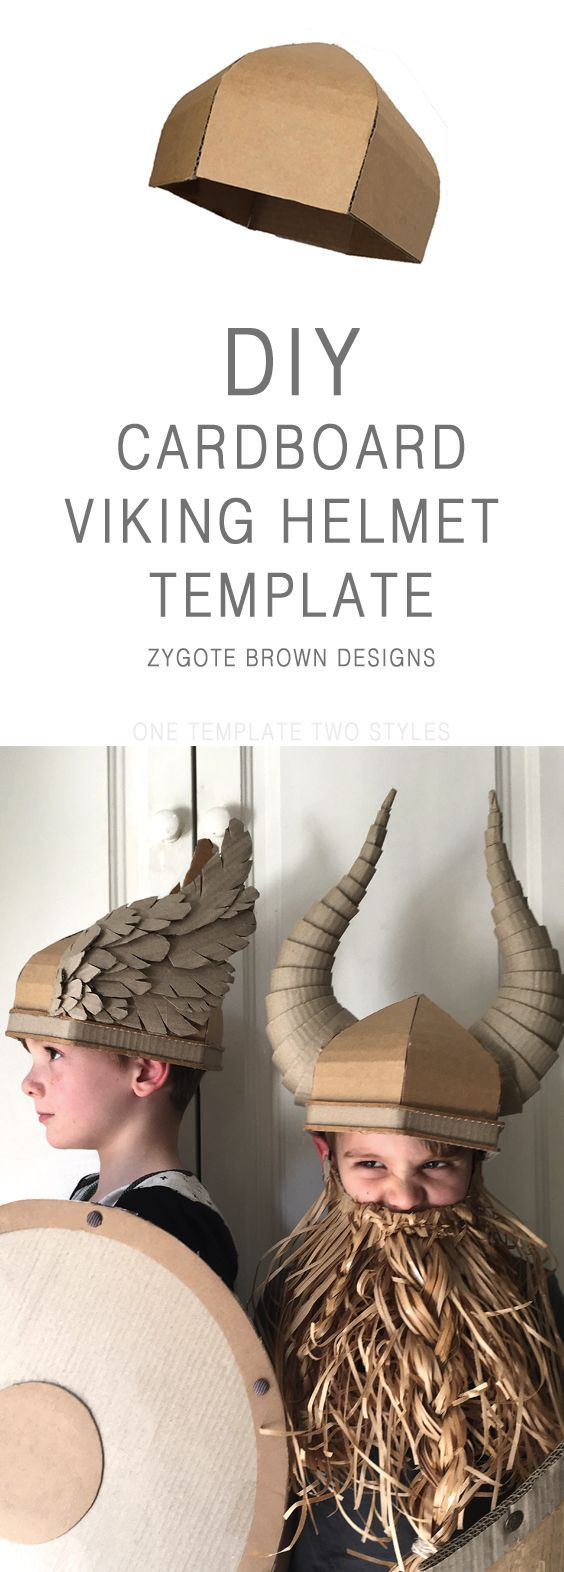 Cardboard Viking Helmet Template. One template two different styles, horns or wings. By Zygote Brown Designs.